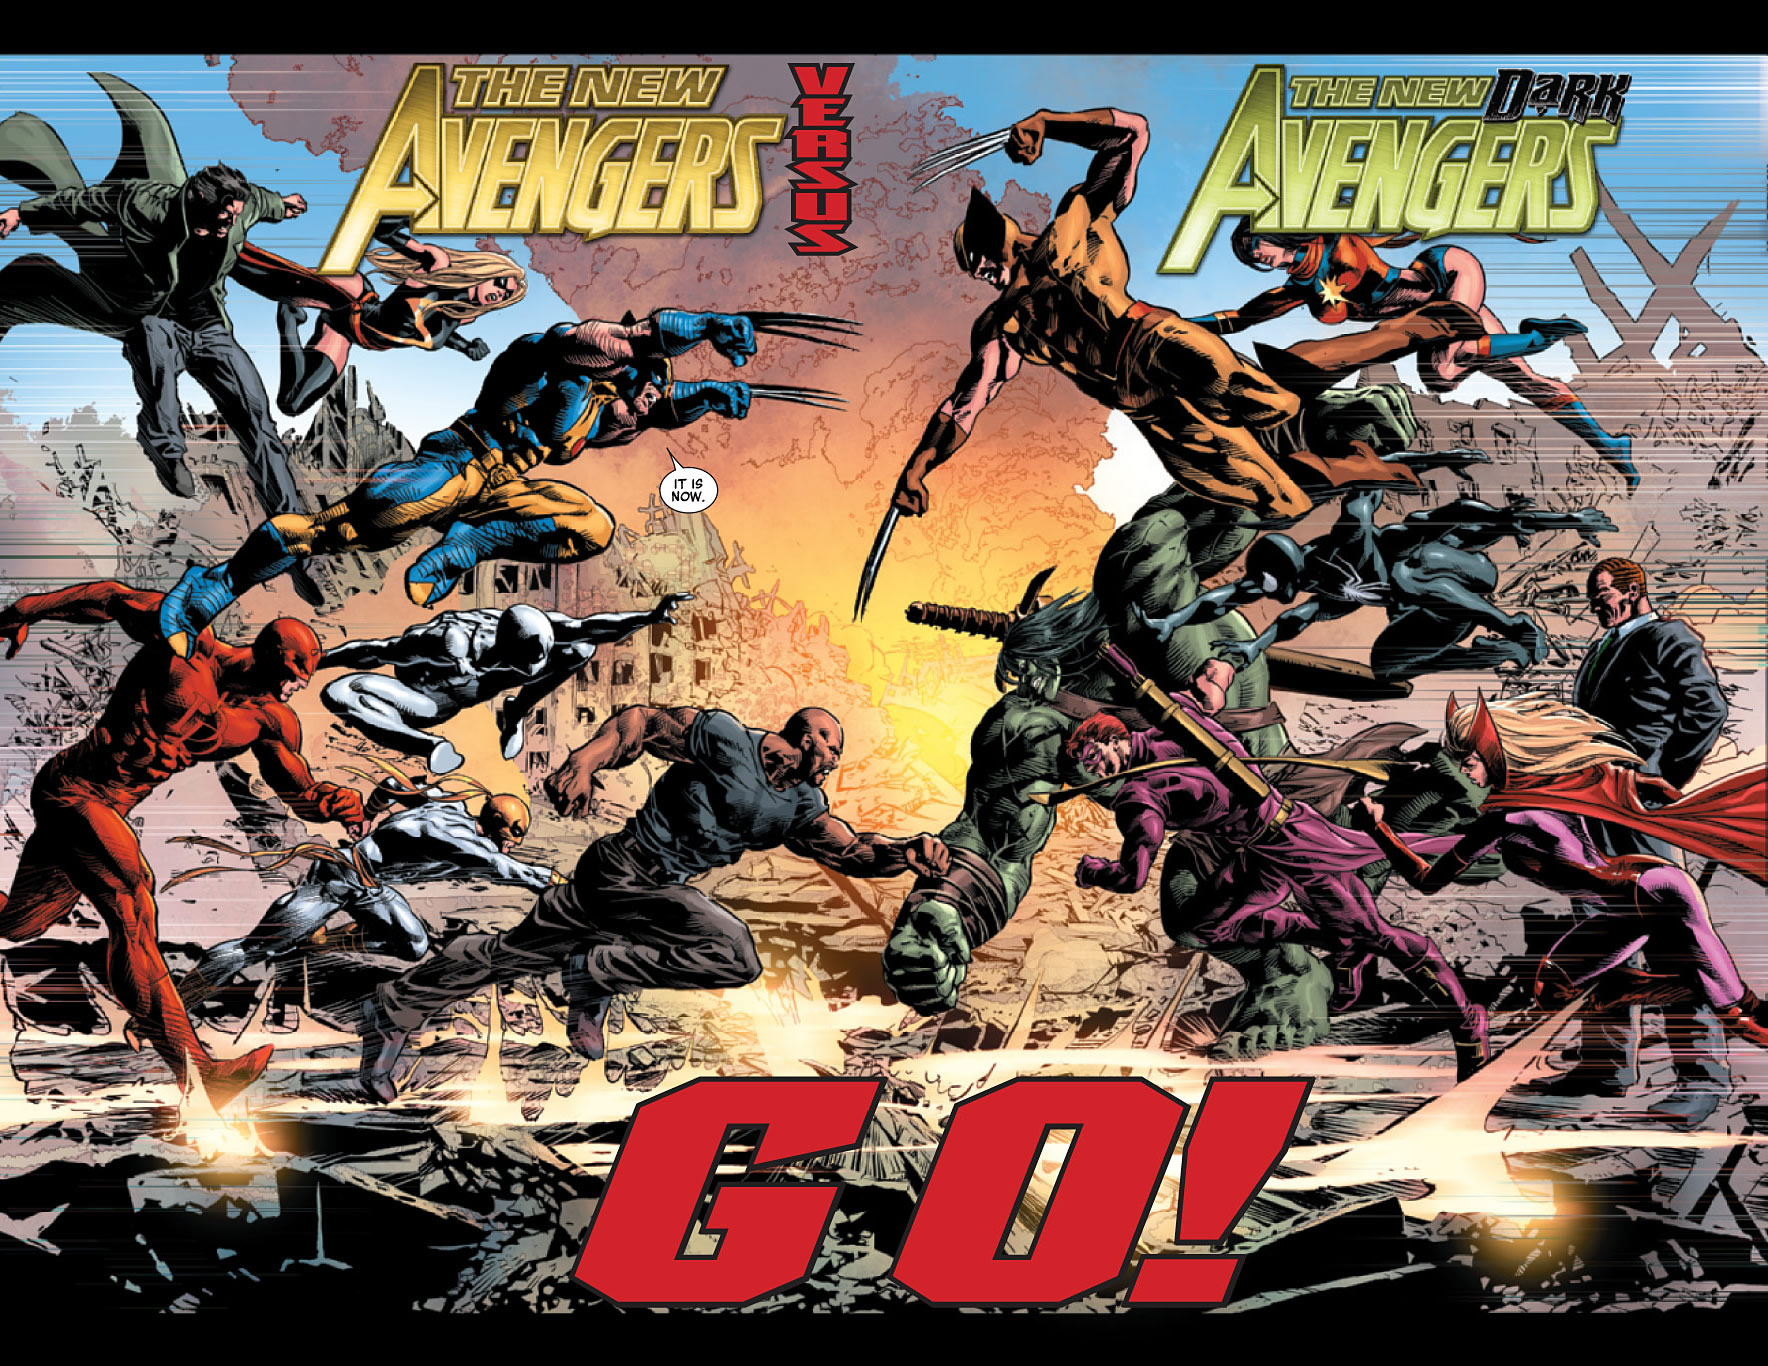 http://img4.wikia.nocookie.net/__cb20120107194658/marveldatabase/images/2/29/The_New_Avengers_versus_The_New_Dark_Avengers.jpg